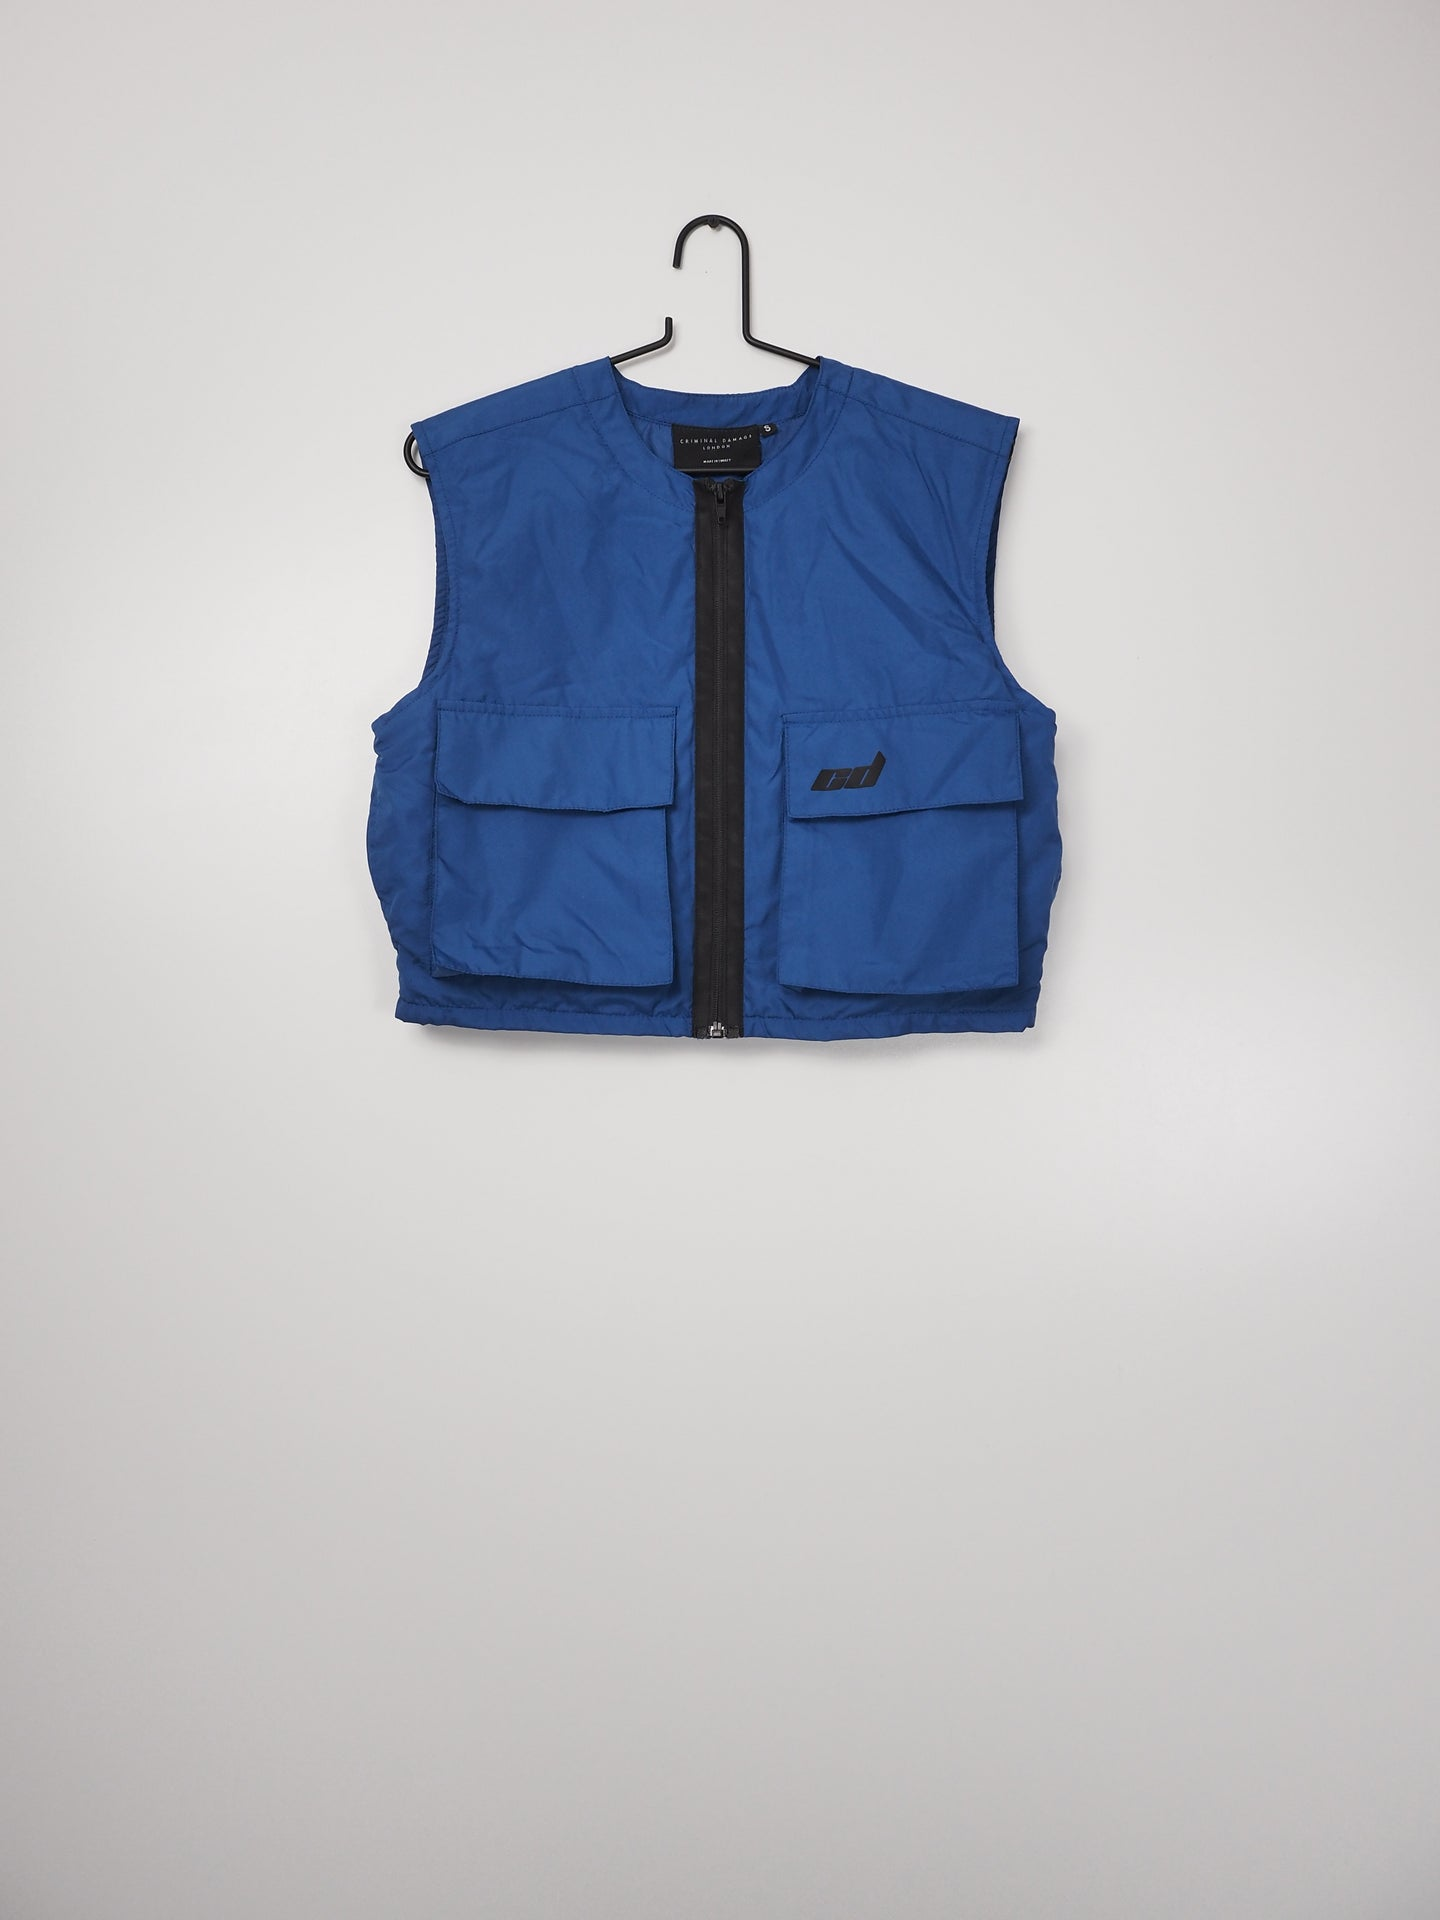 Blauw vest (Criminal Damage)